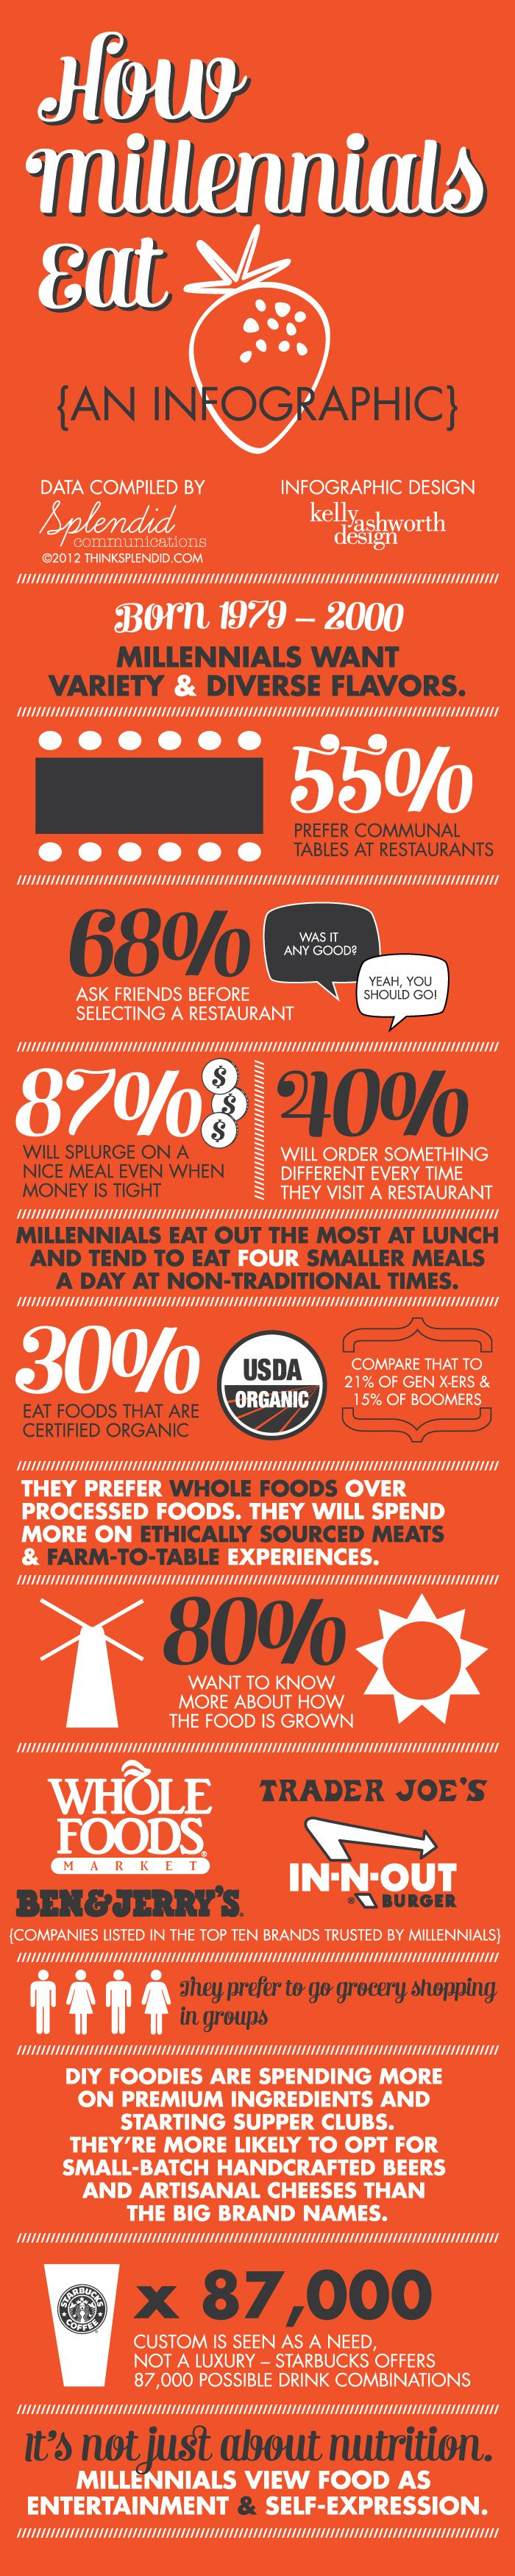 Knowing how the newest generations view food and eating can help your business when marketing to them.